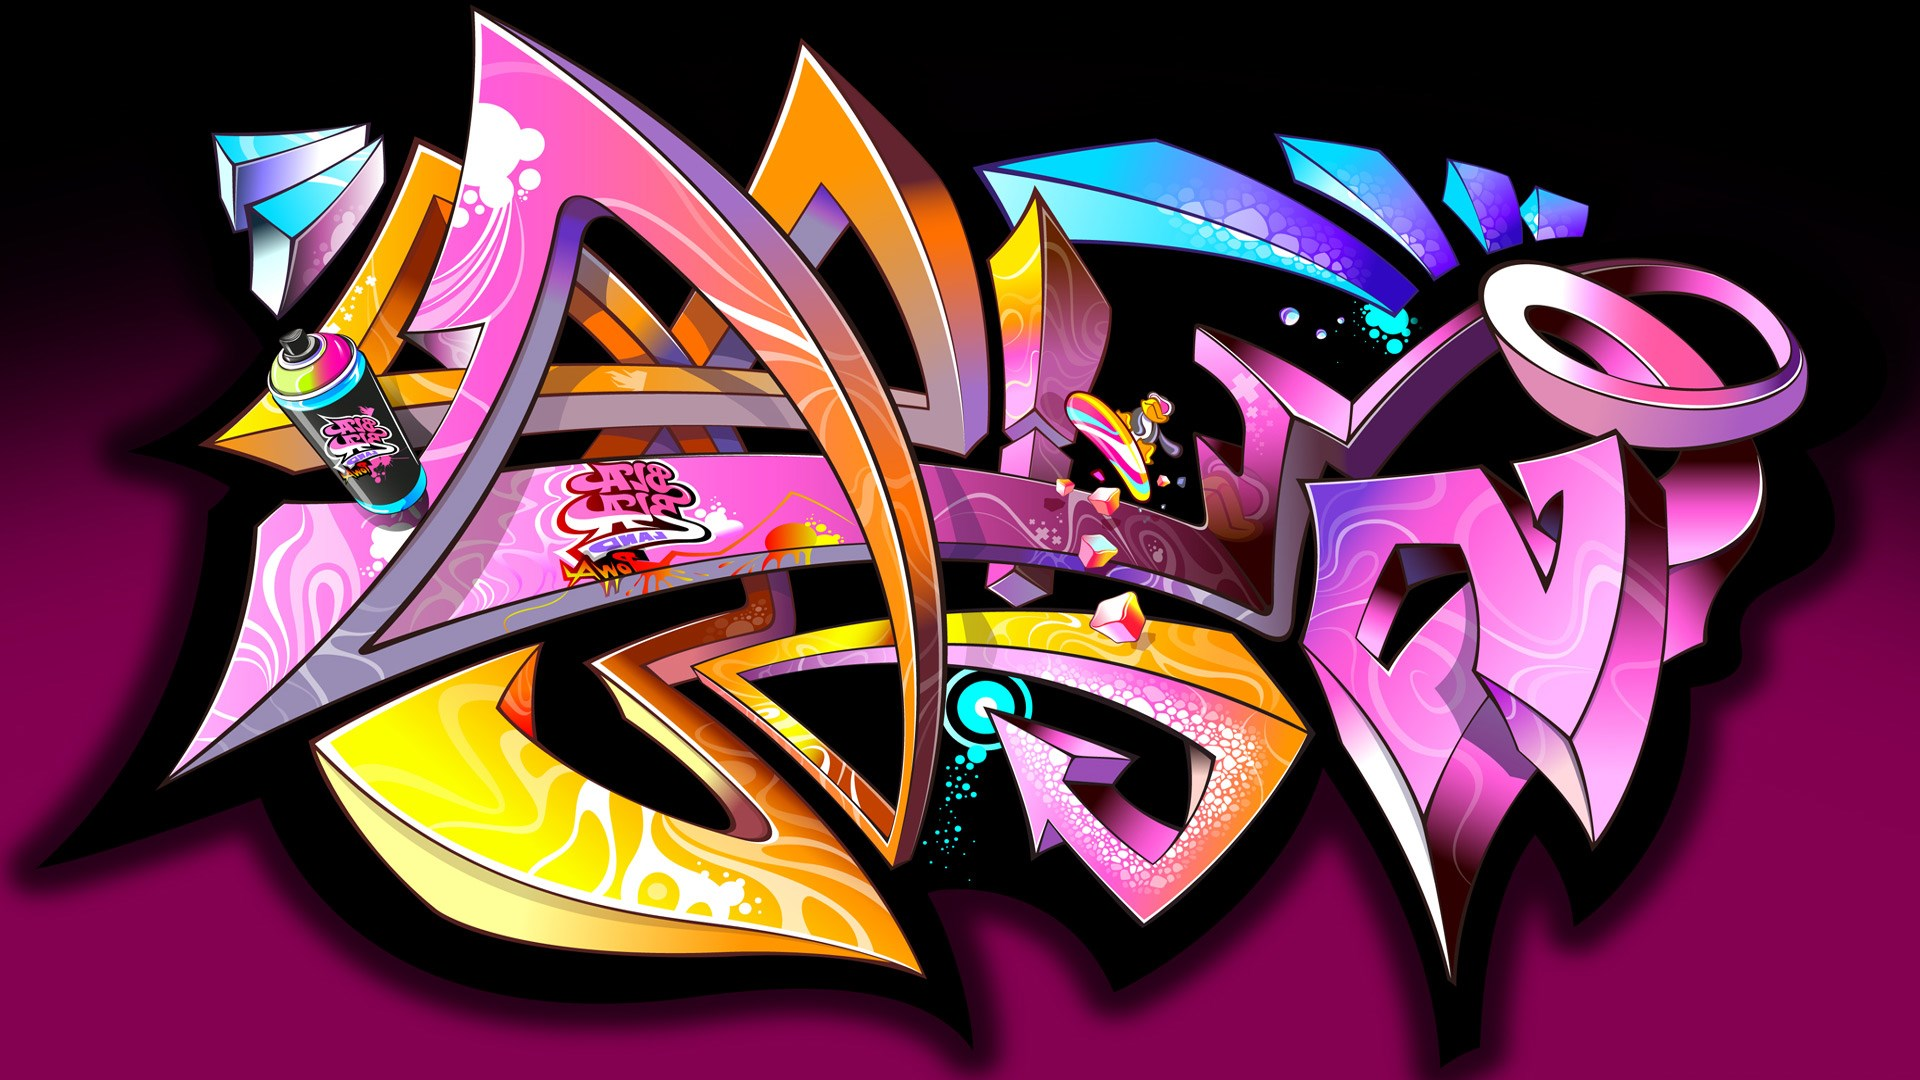 Graffiti basketball wallpaper